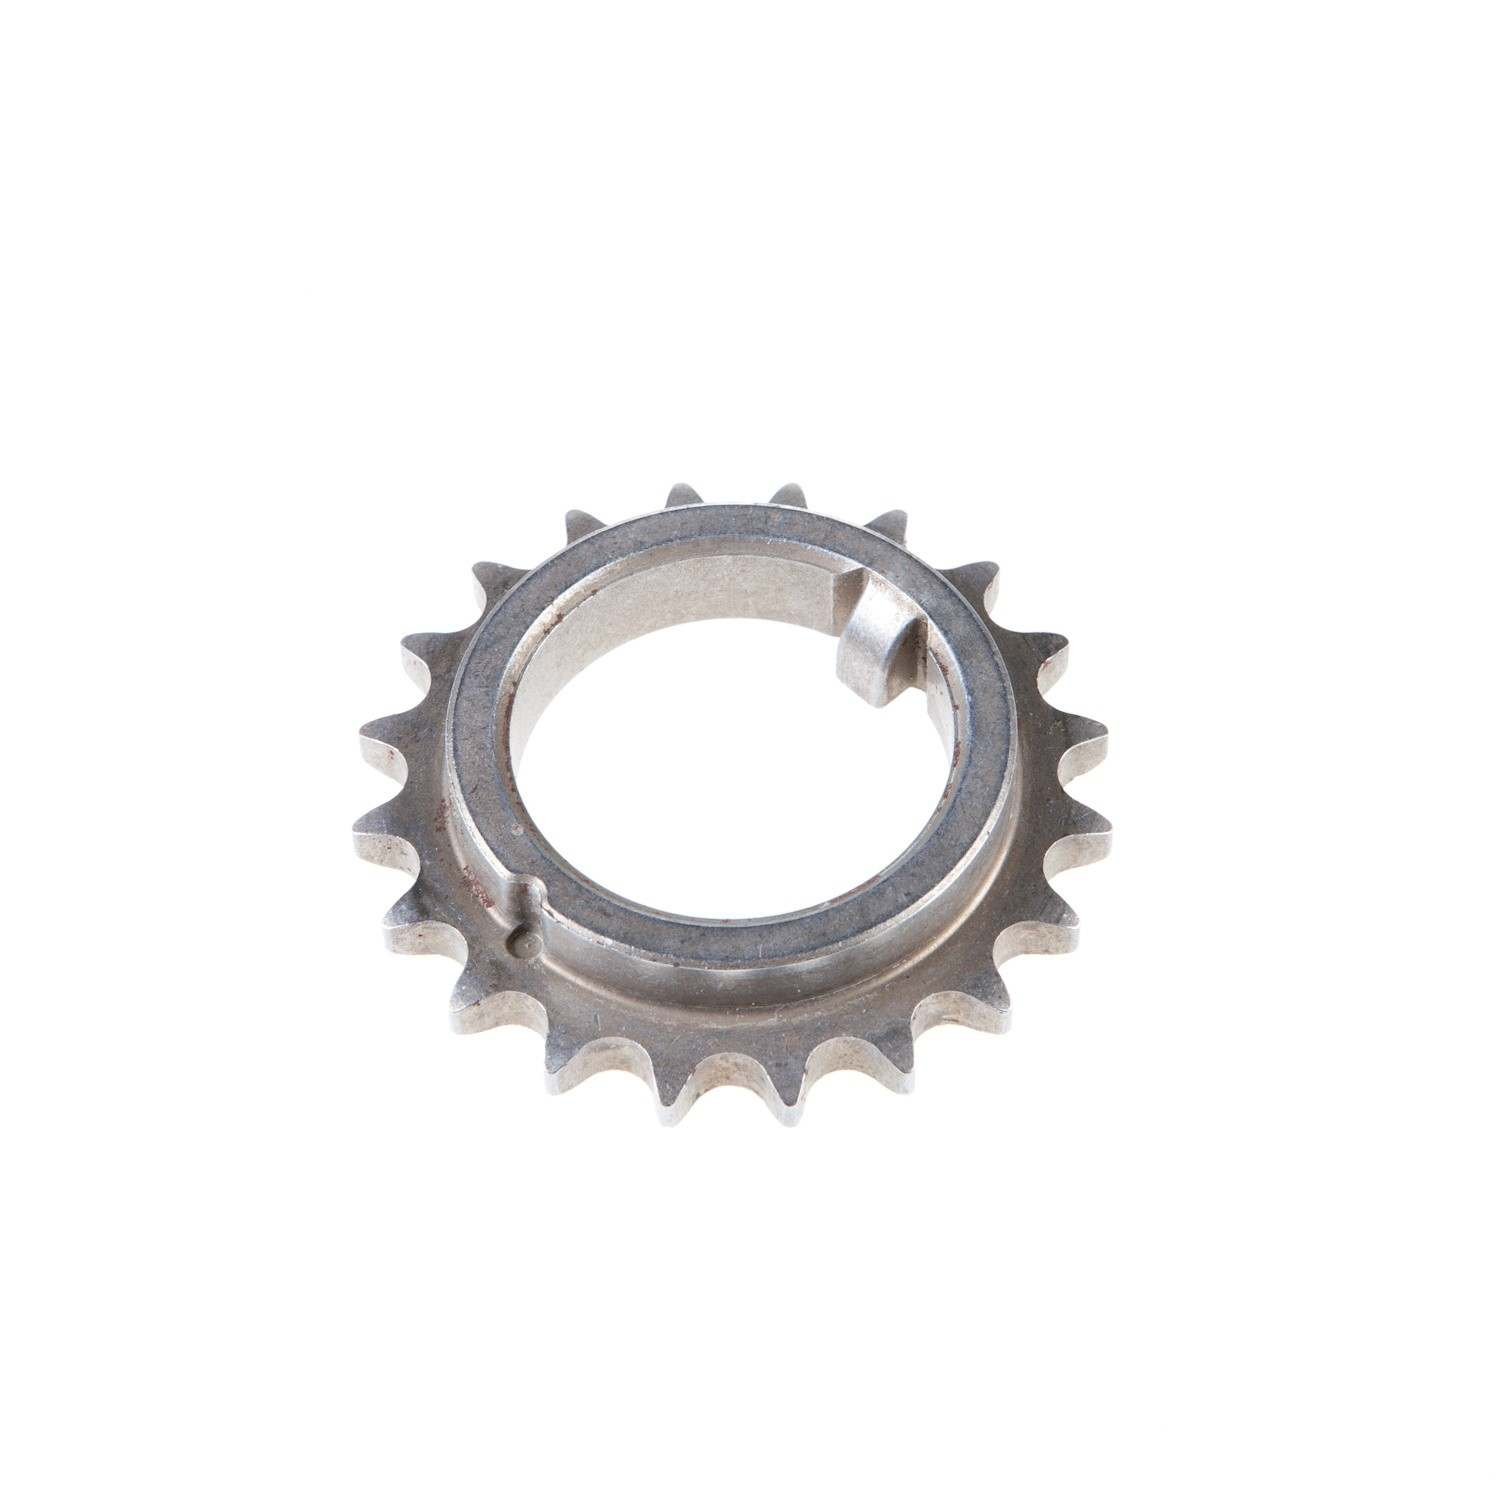 MELLING - Stock Engine Timing Camshaft Sprocket - MEL S790P